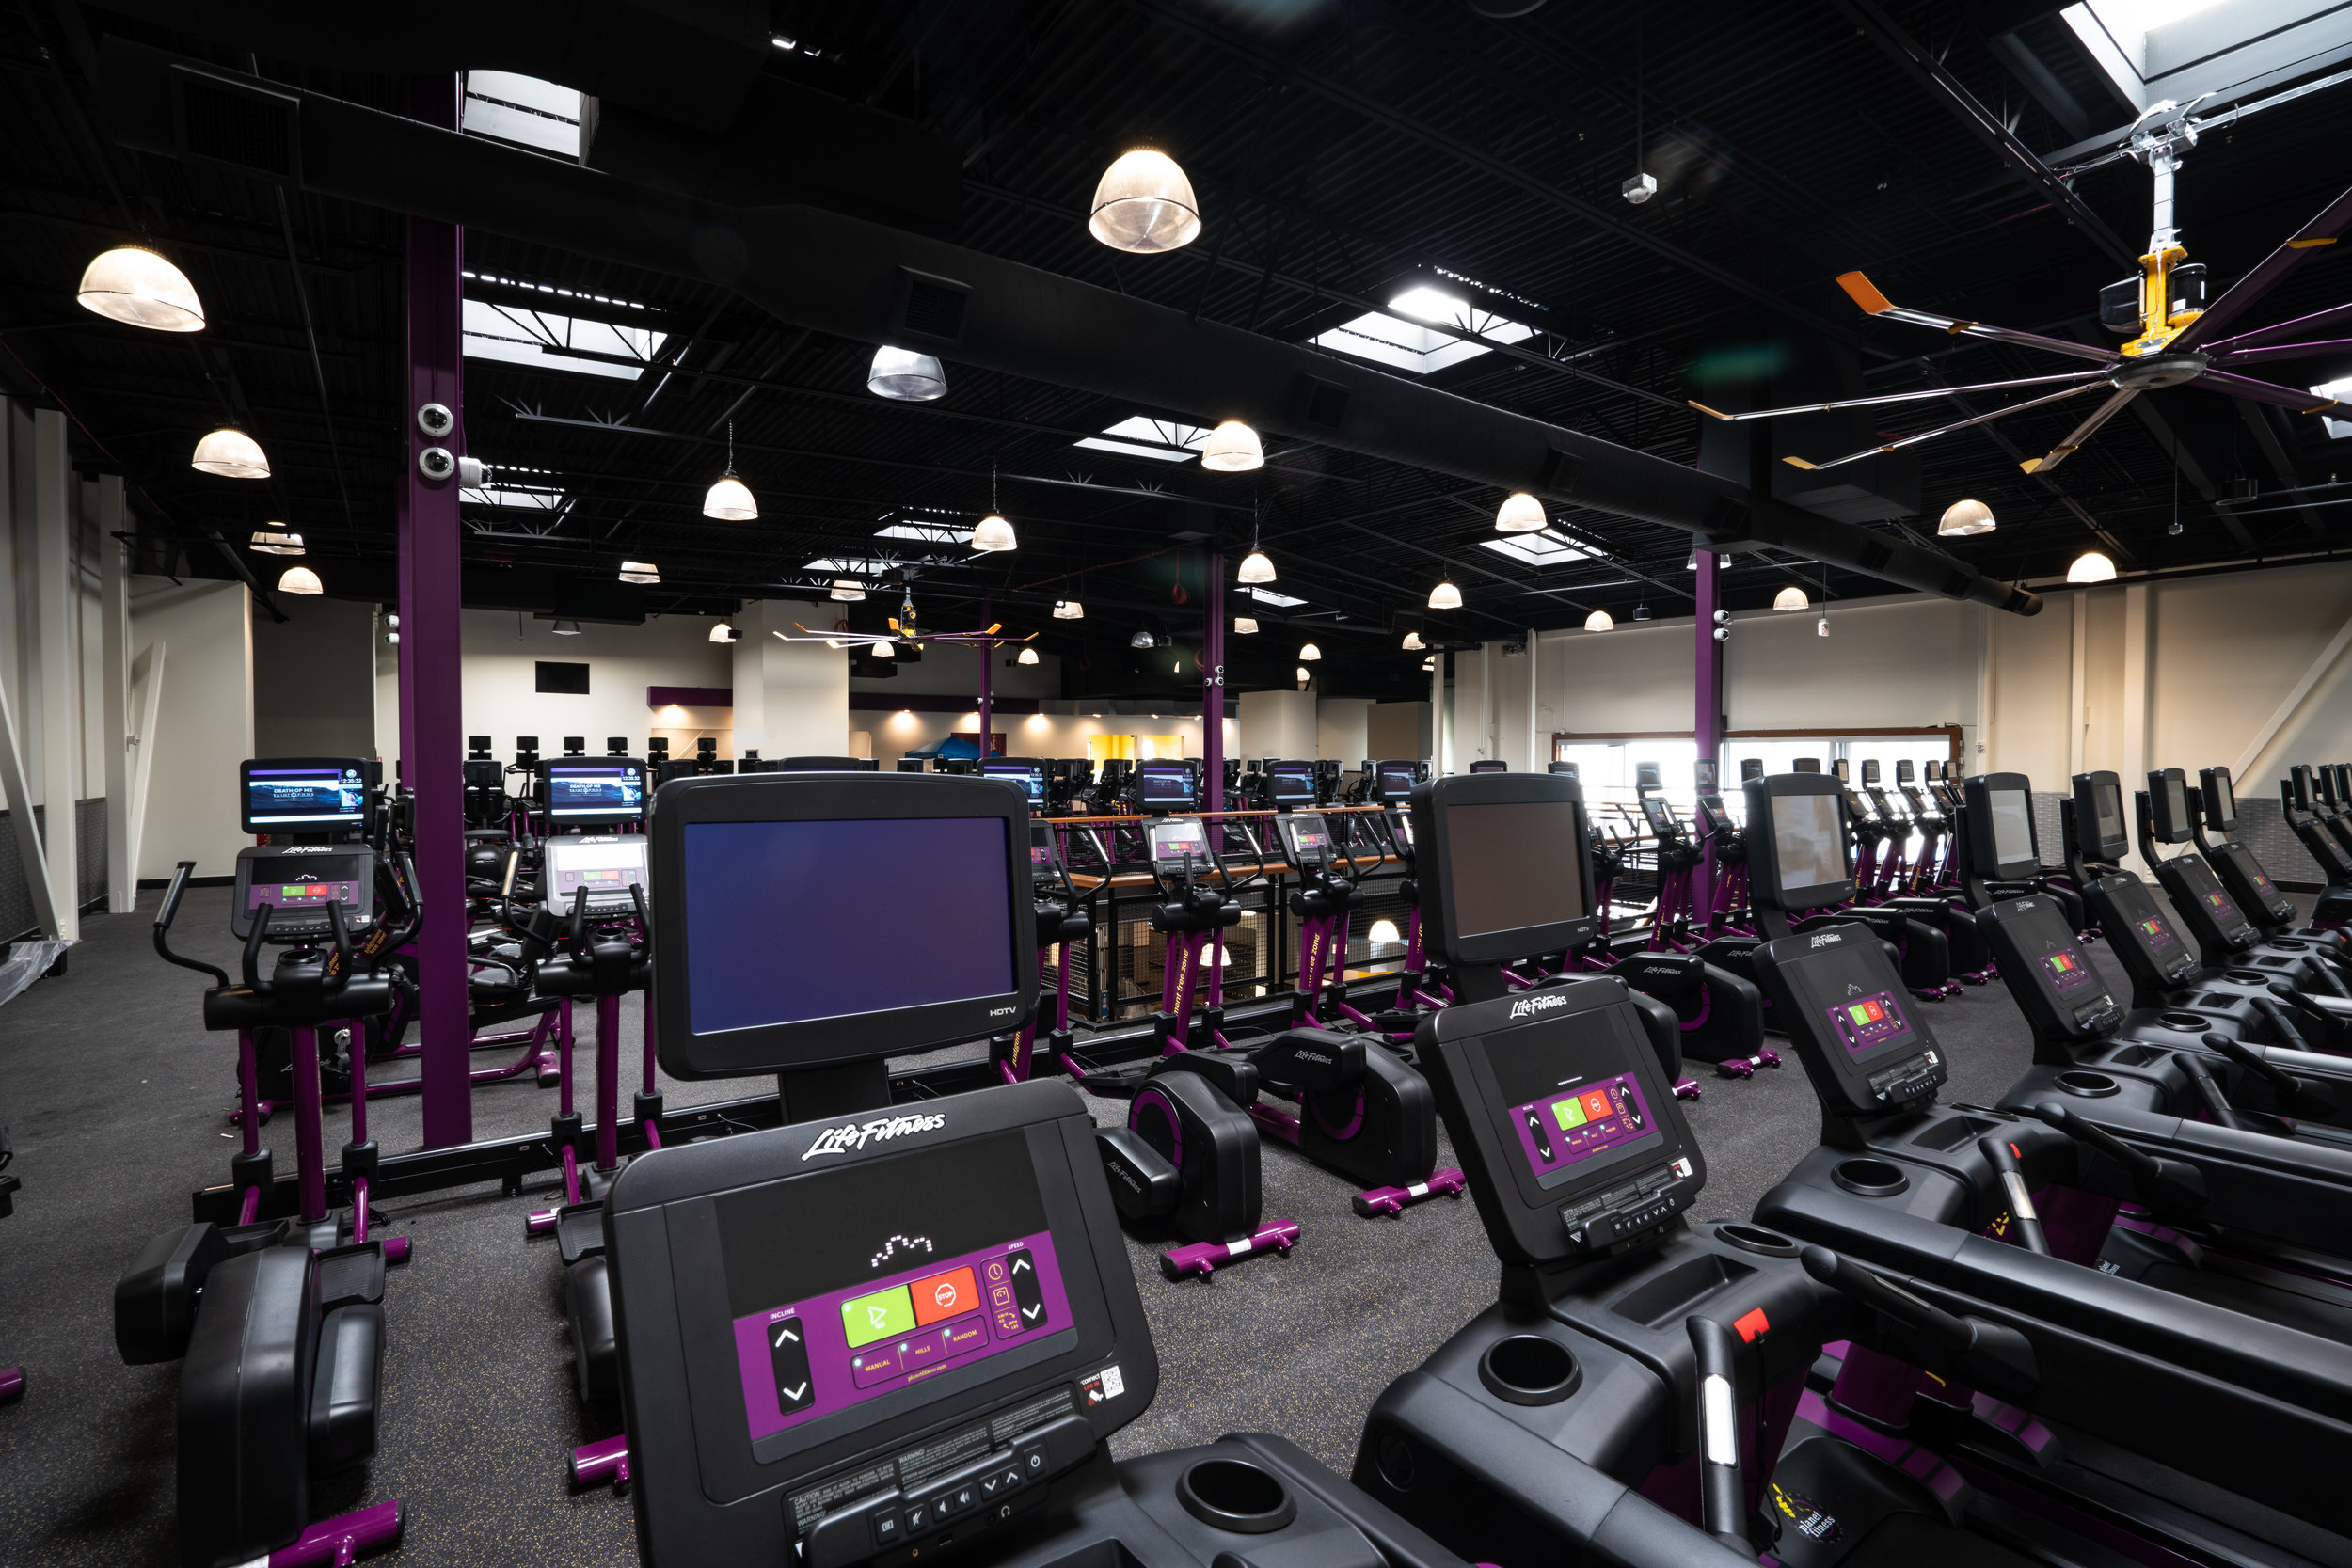 kdstahlconstruction_planetfitness.jpg